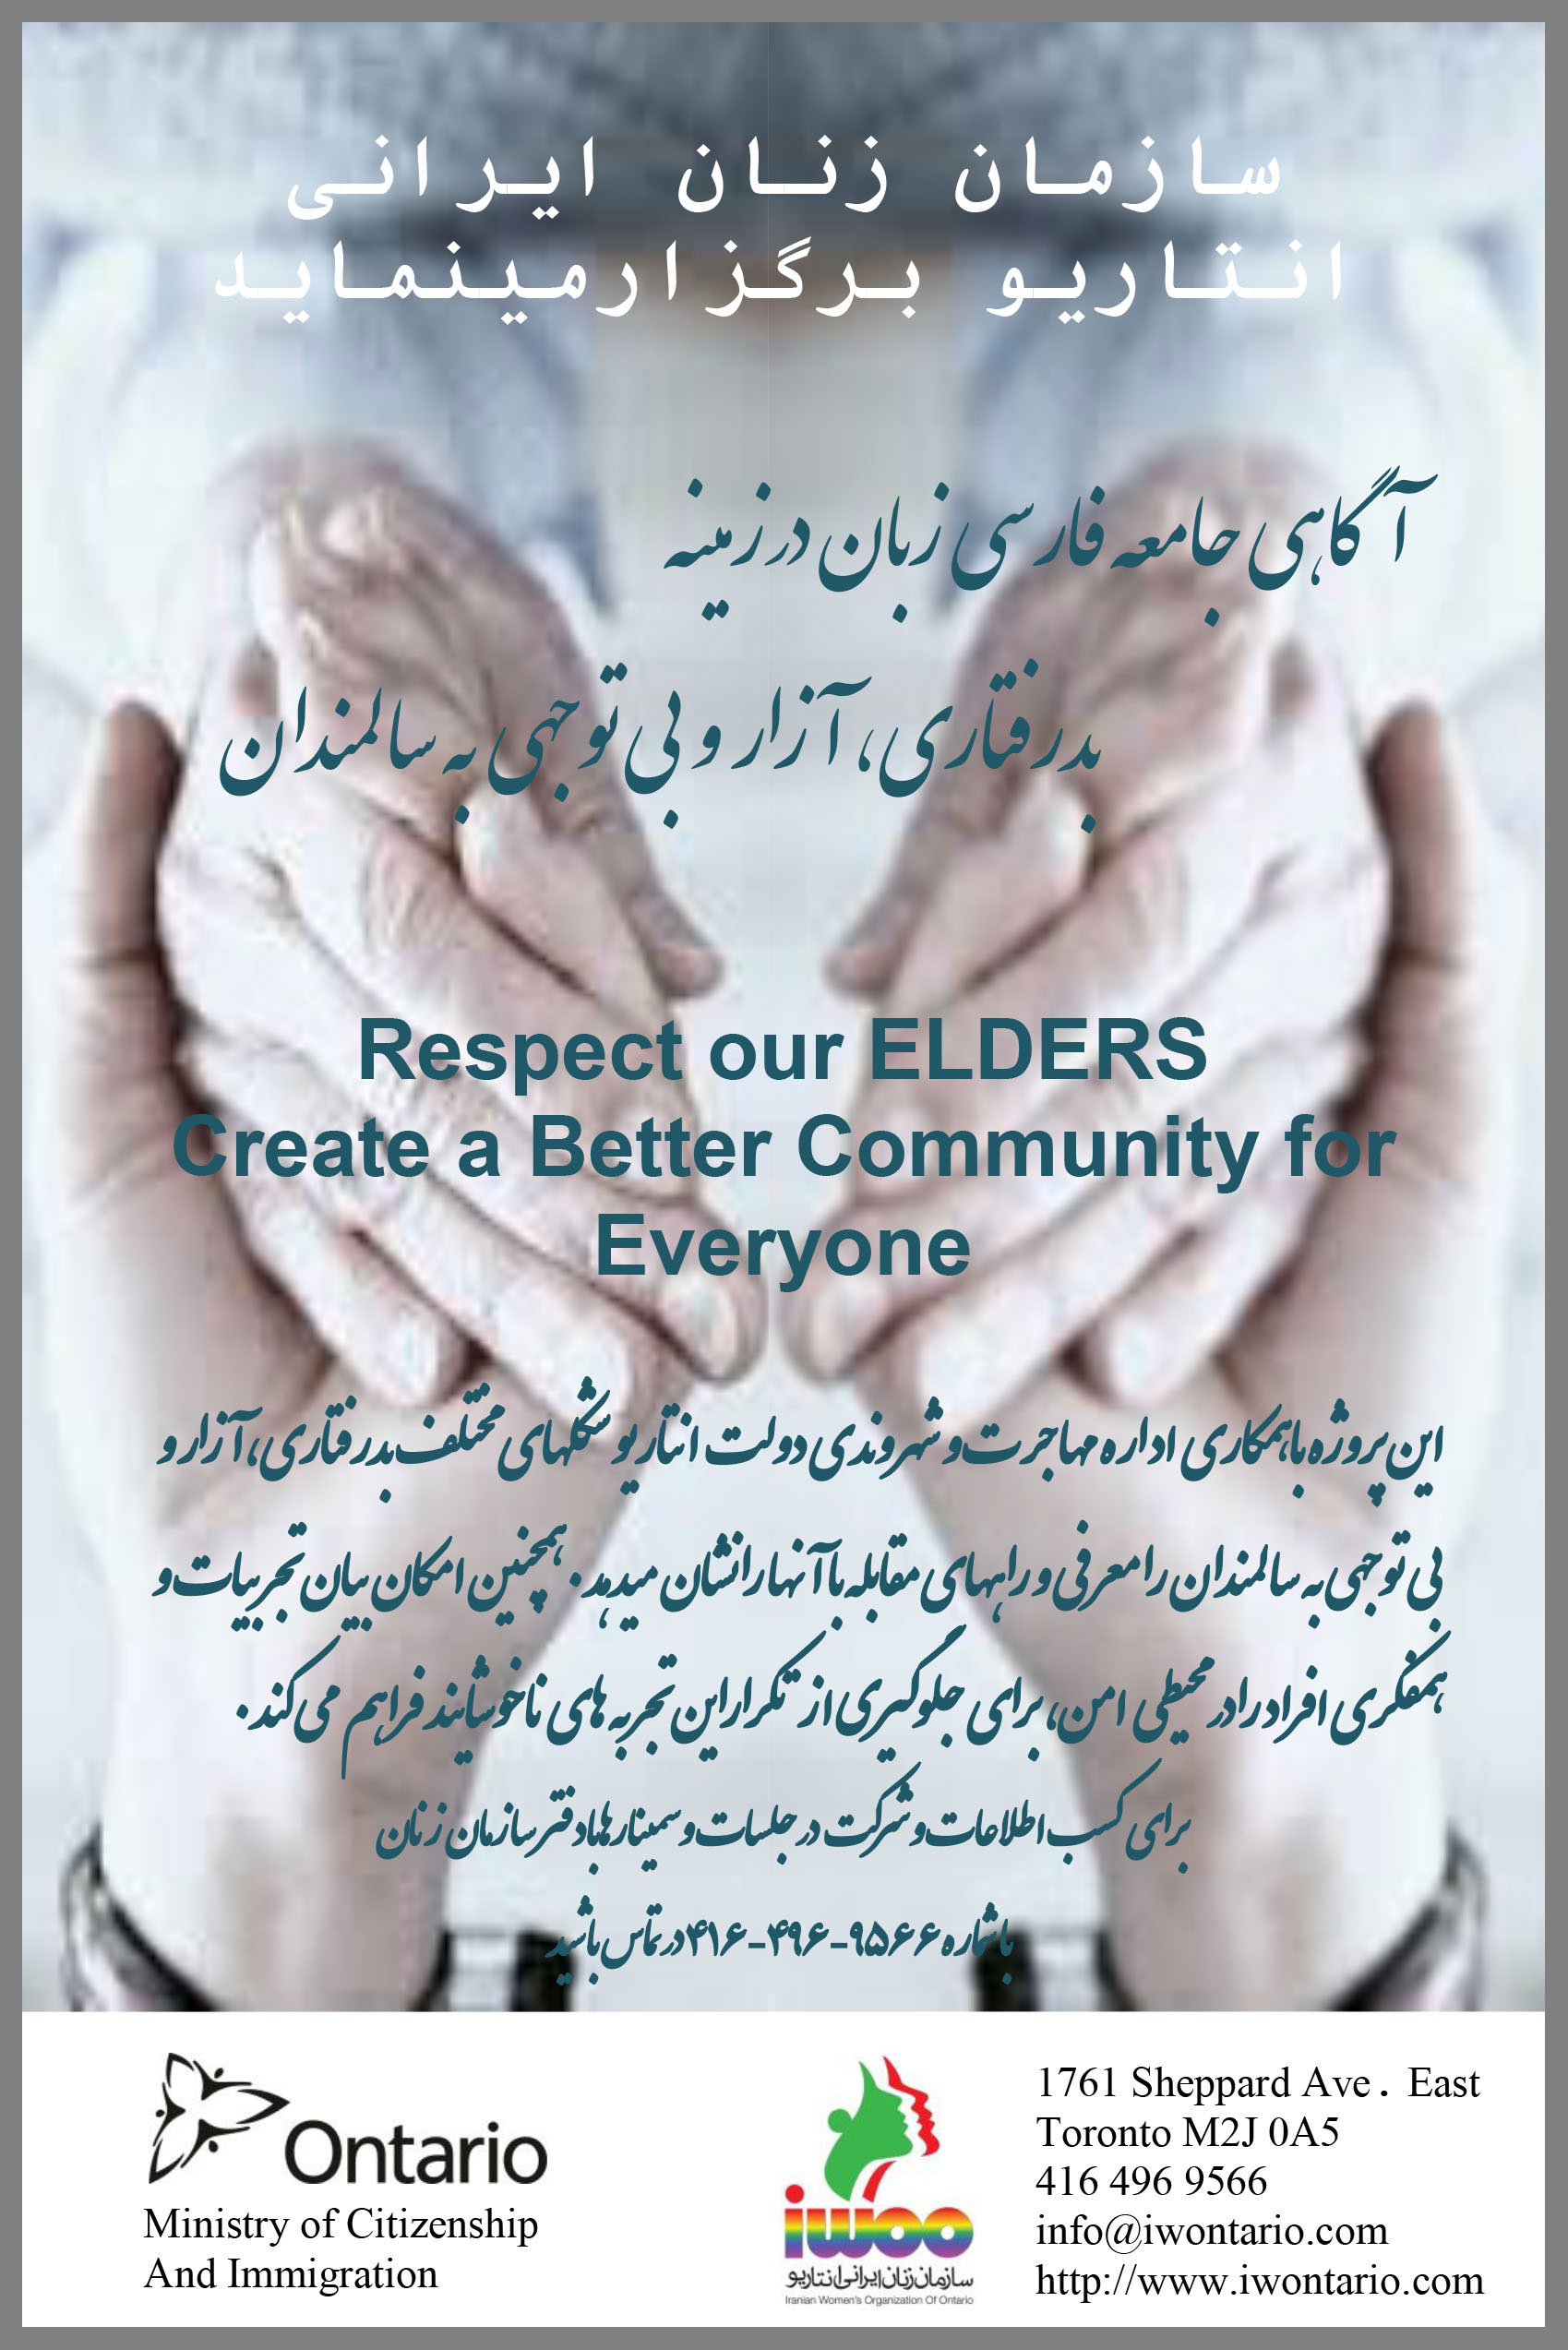 About Elder Abuse